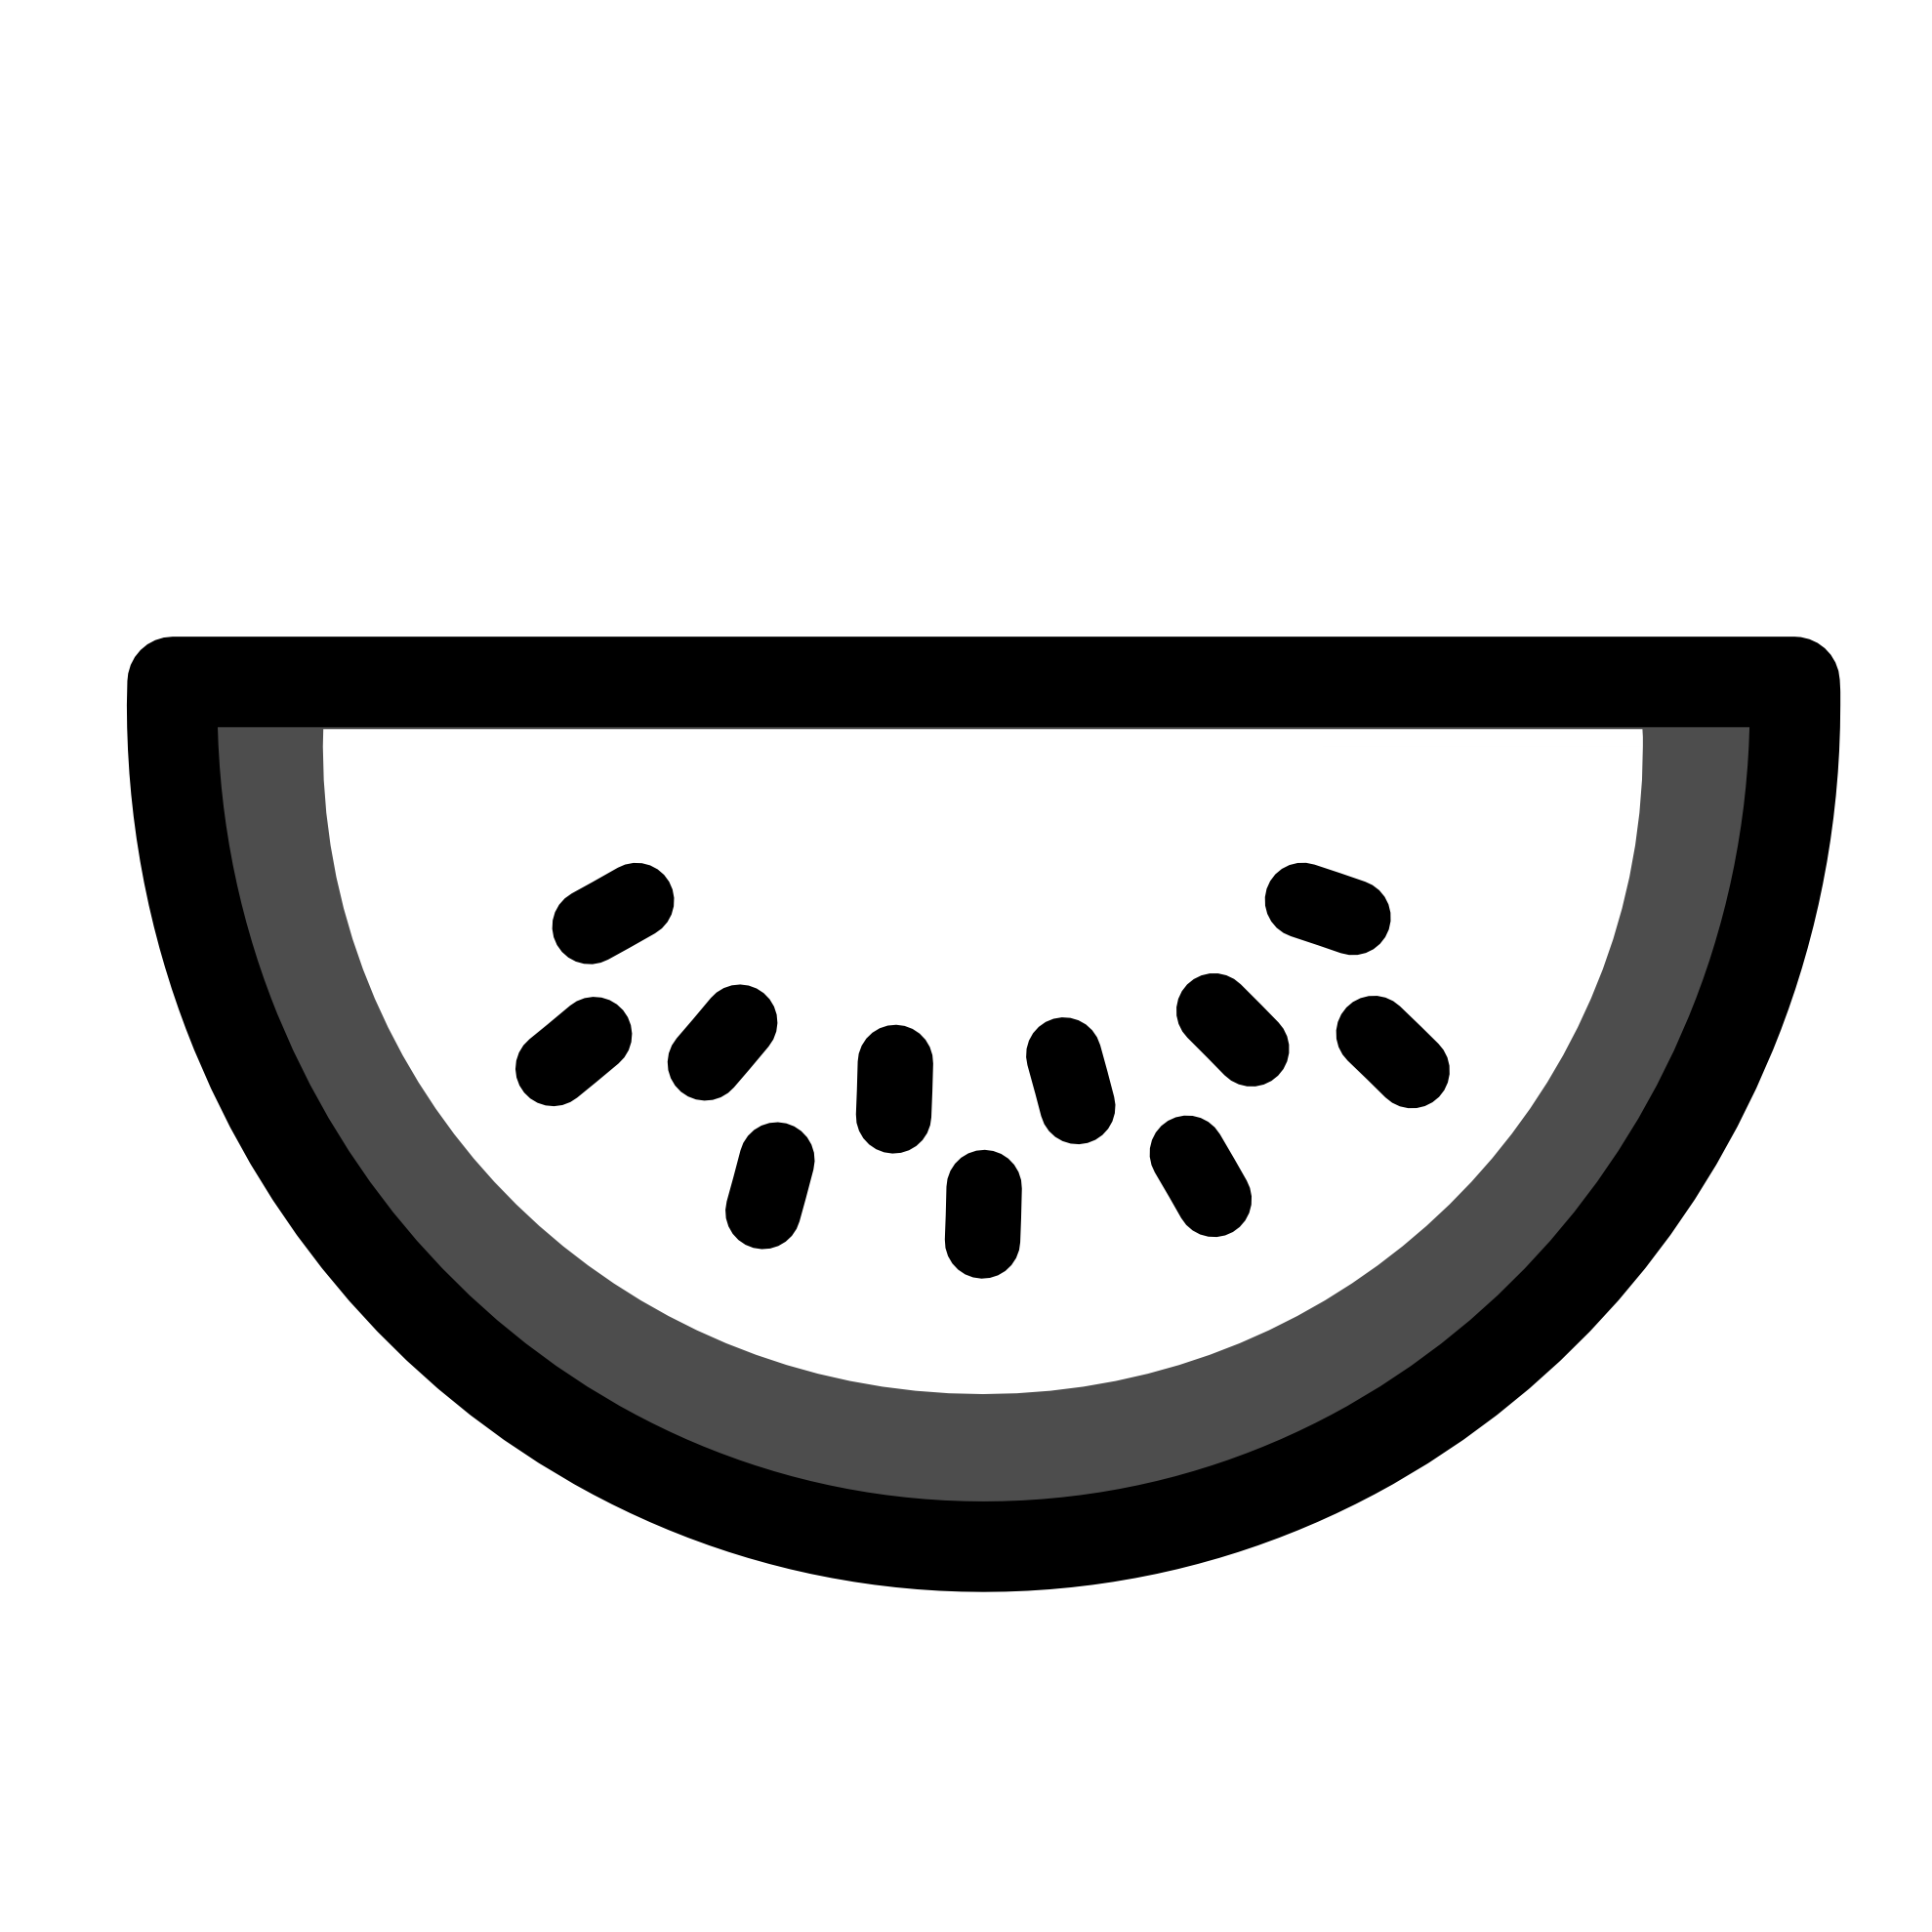 Black And White Watermelon Clipart.